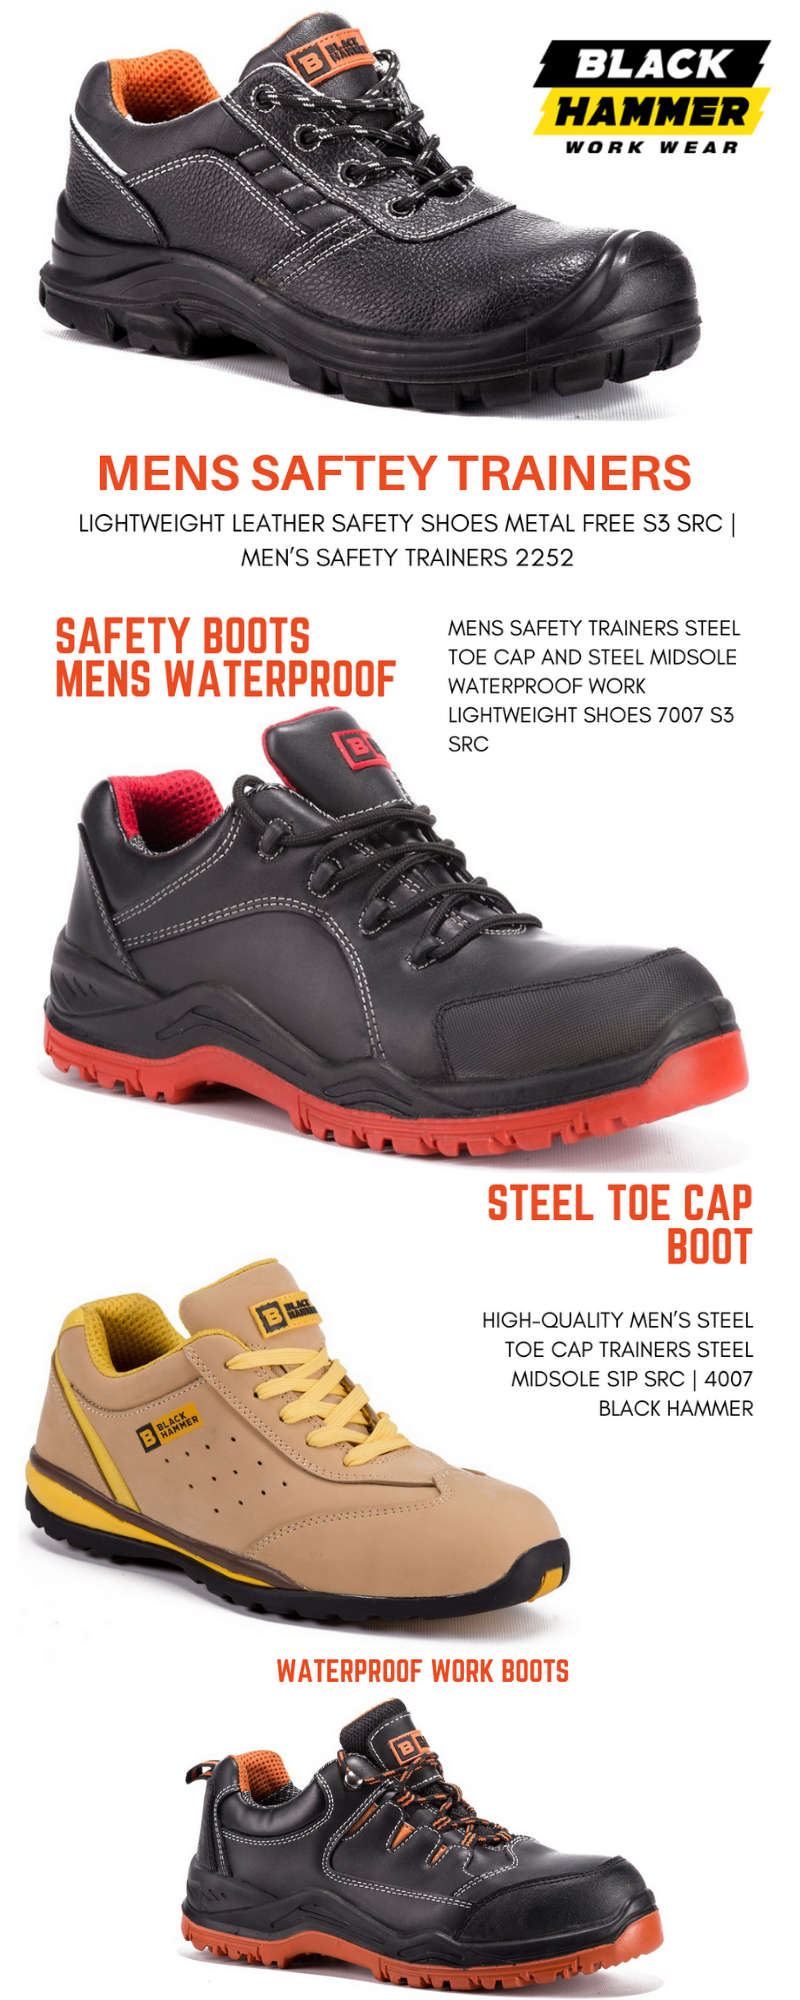 Mens Safety Trainers. Black Hammer are